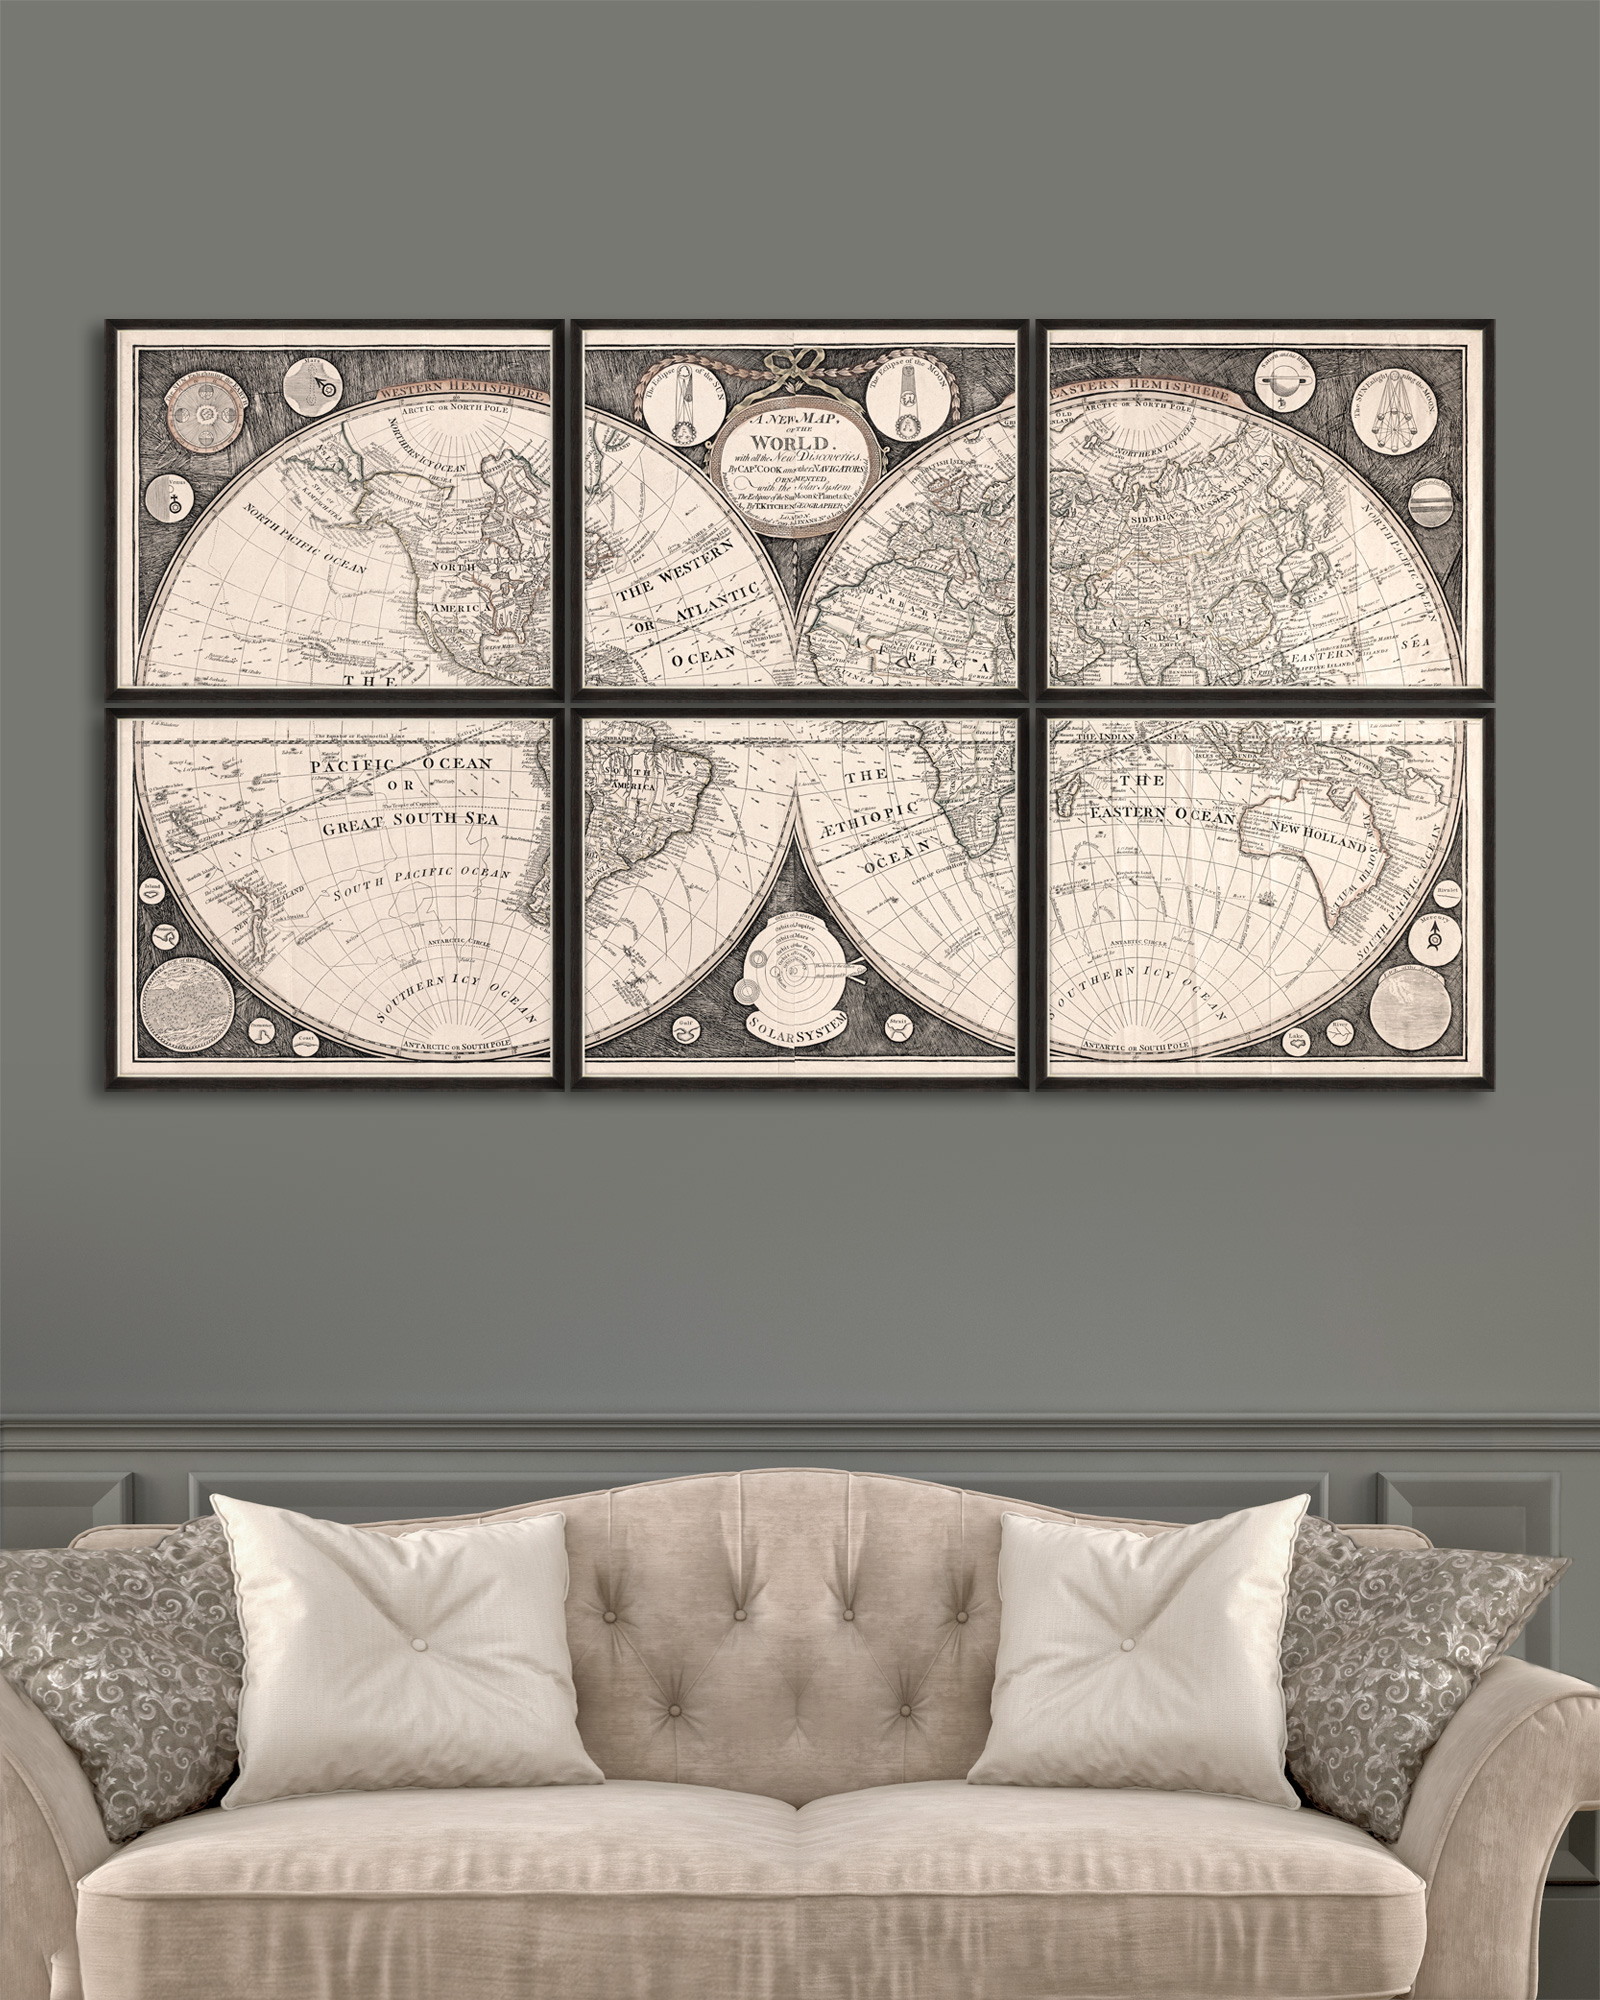 Tablou 6 piese Framed Art A New Map Of The World imagine